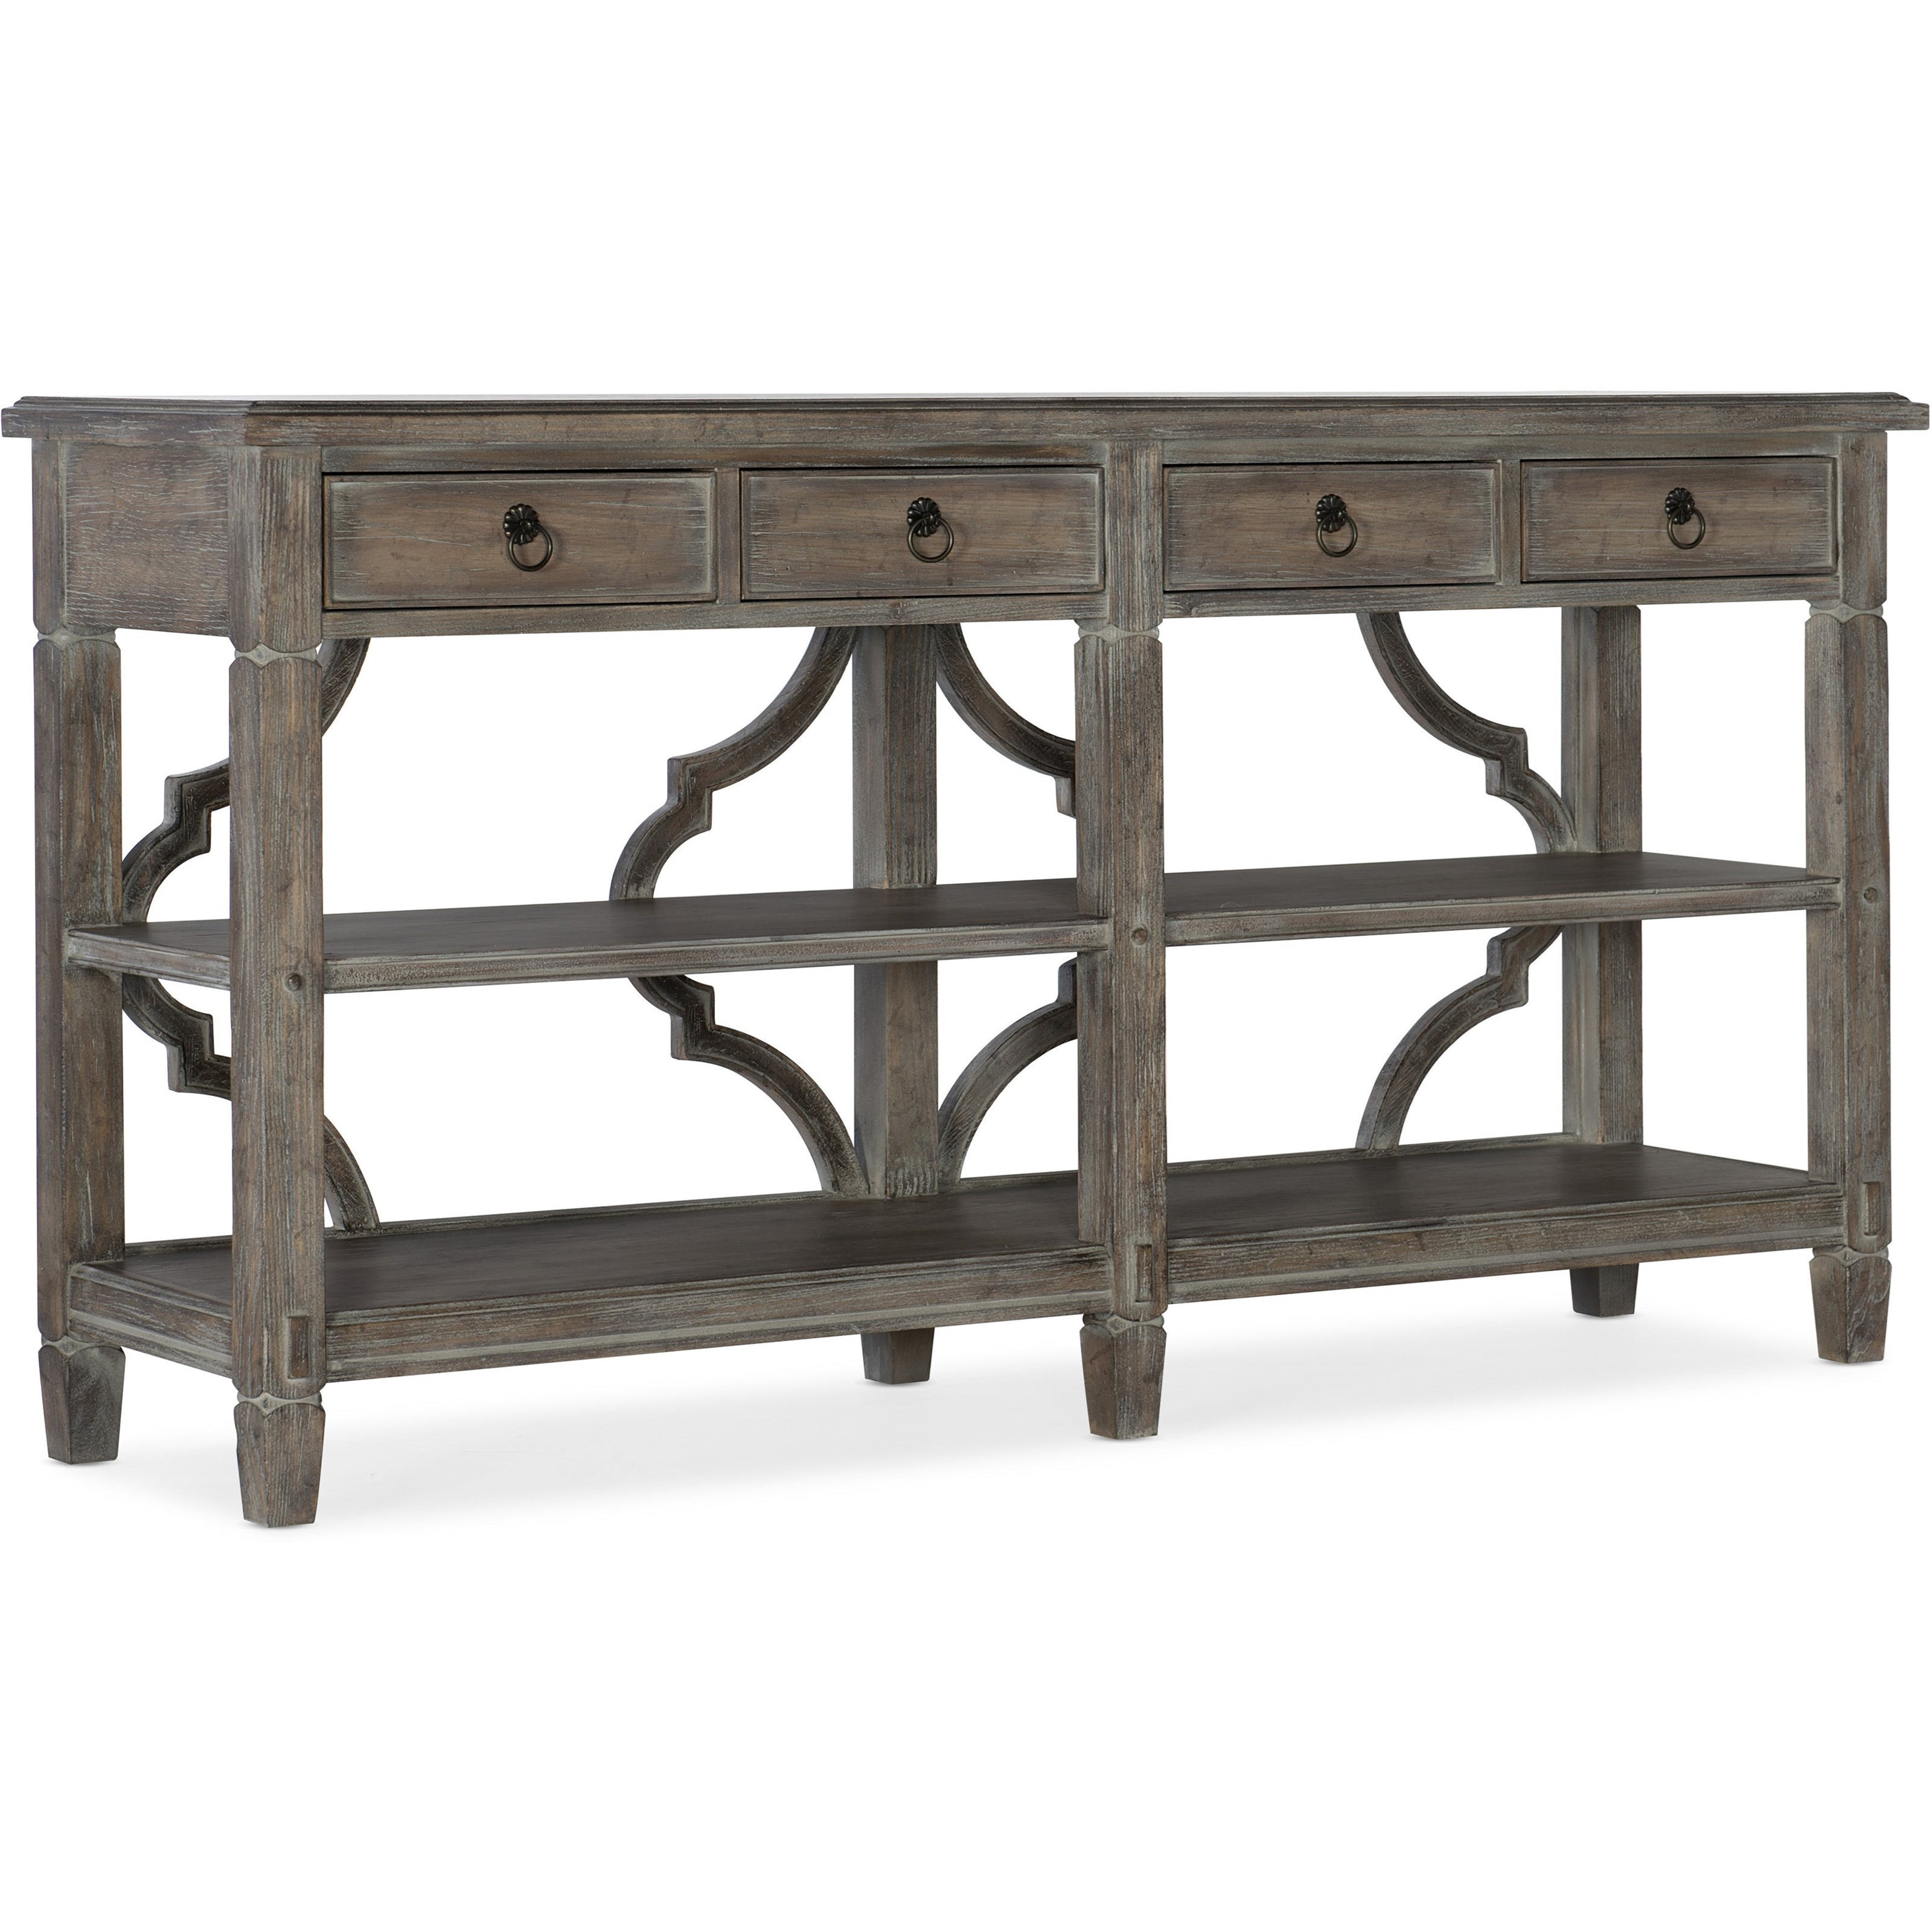 Relaxed Vintage Console Table with Drawers and Shelving